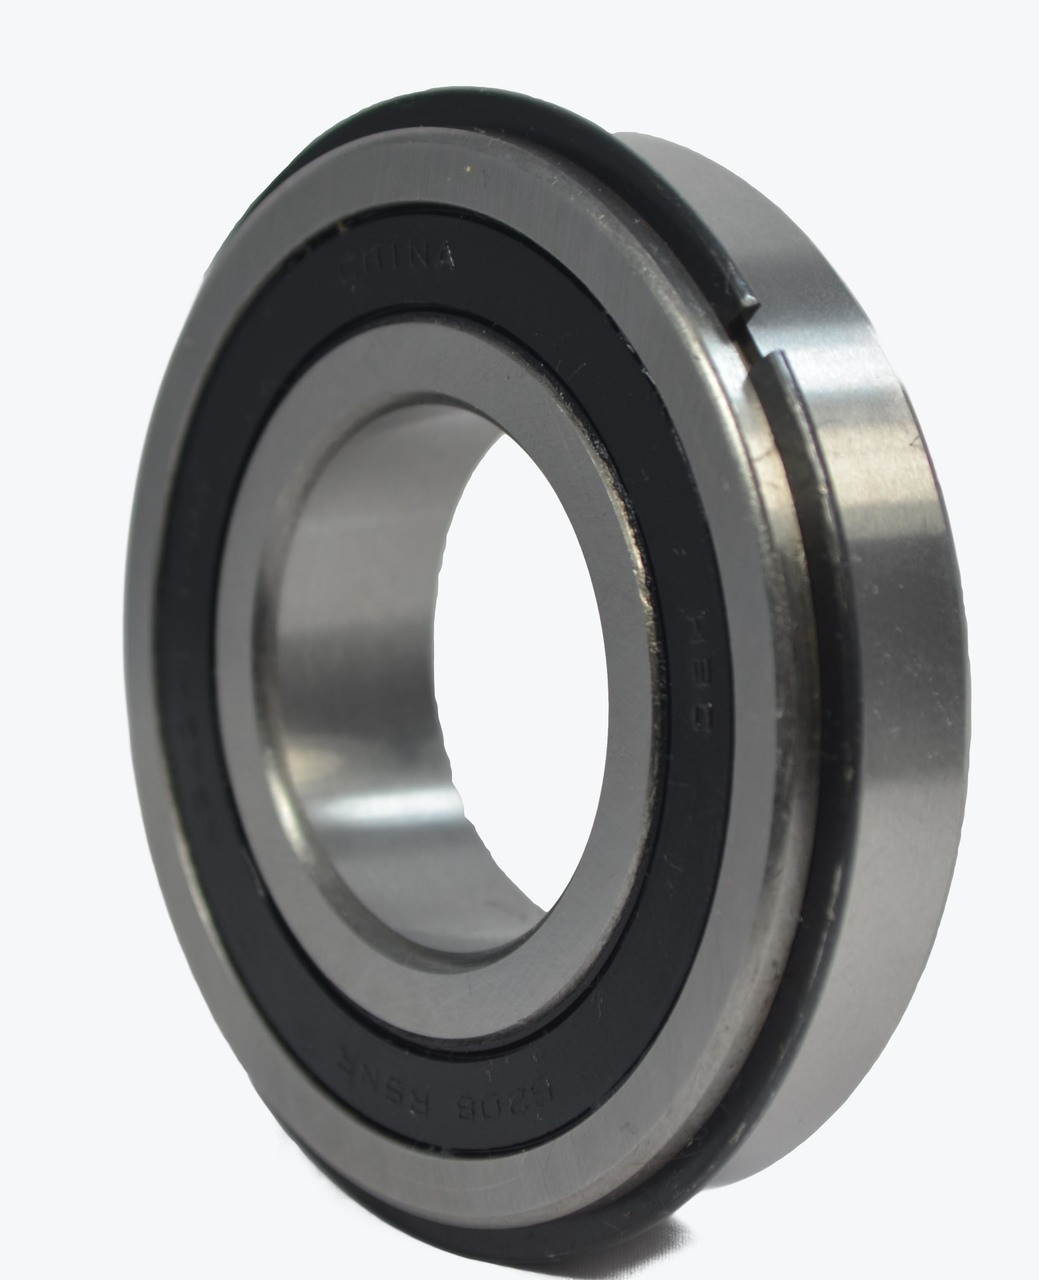 6205-2RSNR  25mm Bore - 2 Rubber Seals with Snap Ring